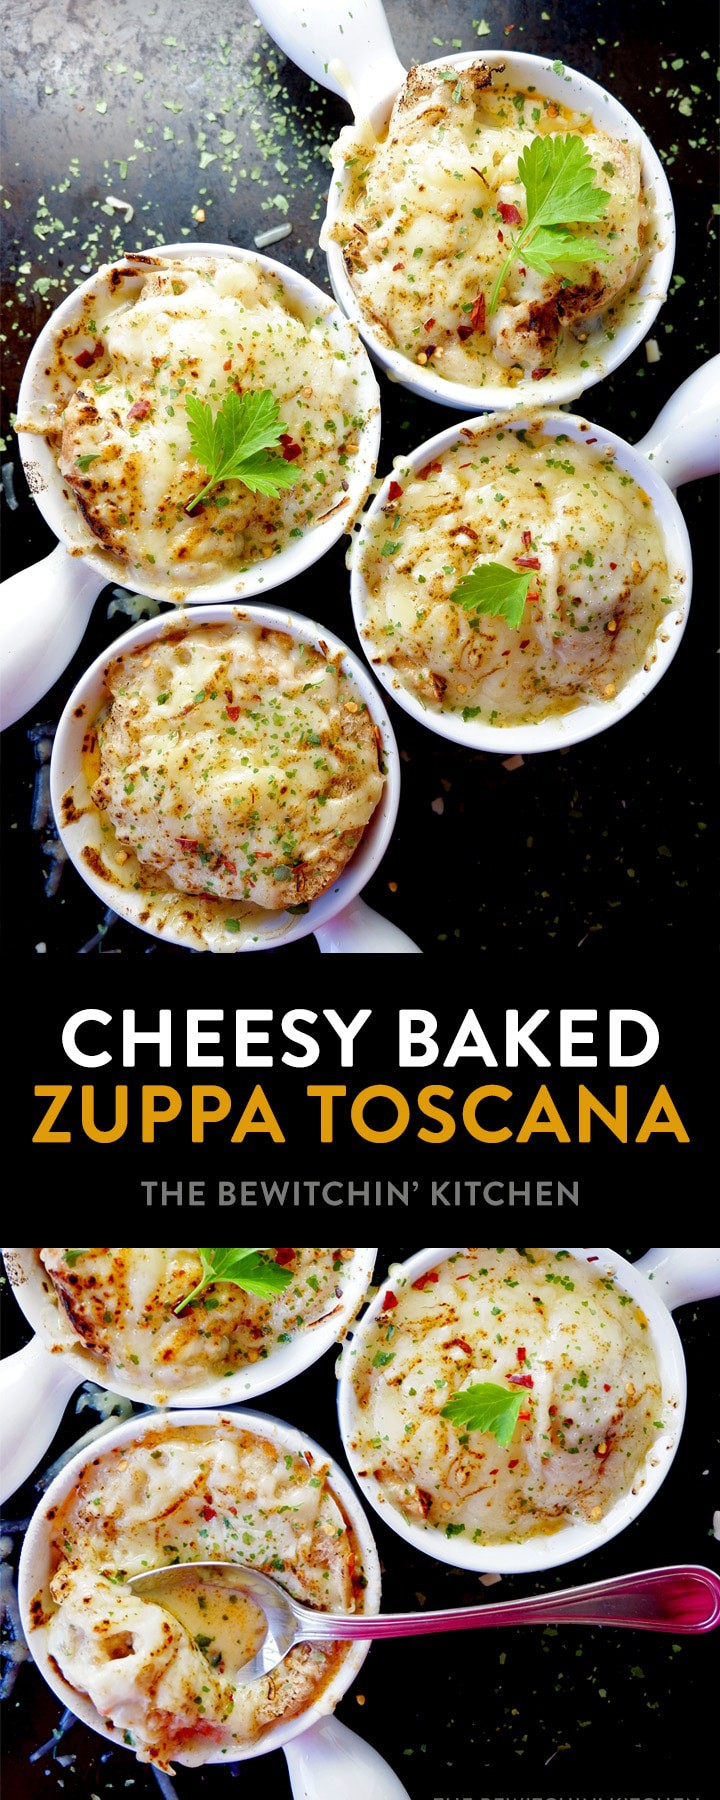 This recipe for Baked Zuppa Toscana is a cheesy twist on an Olive Garden soup favorite. Inspired by both the zuppa and french onion soup, this dinner is pure comfort food that's simple and easy.